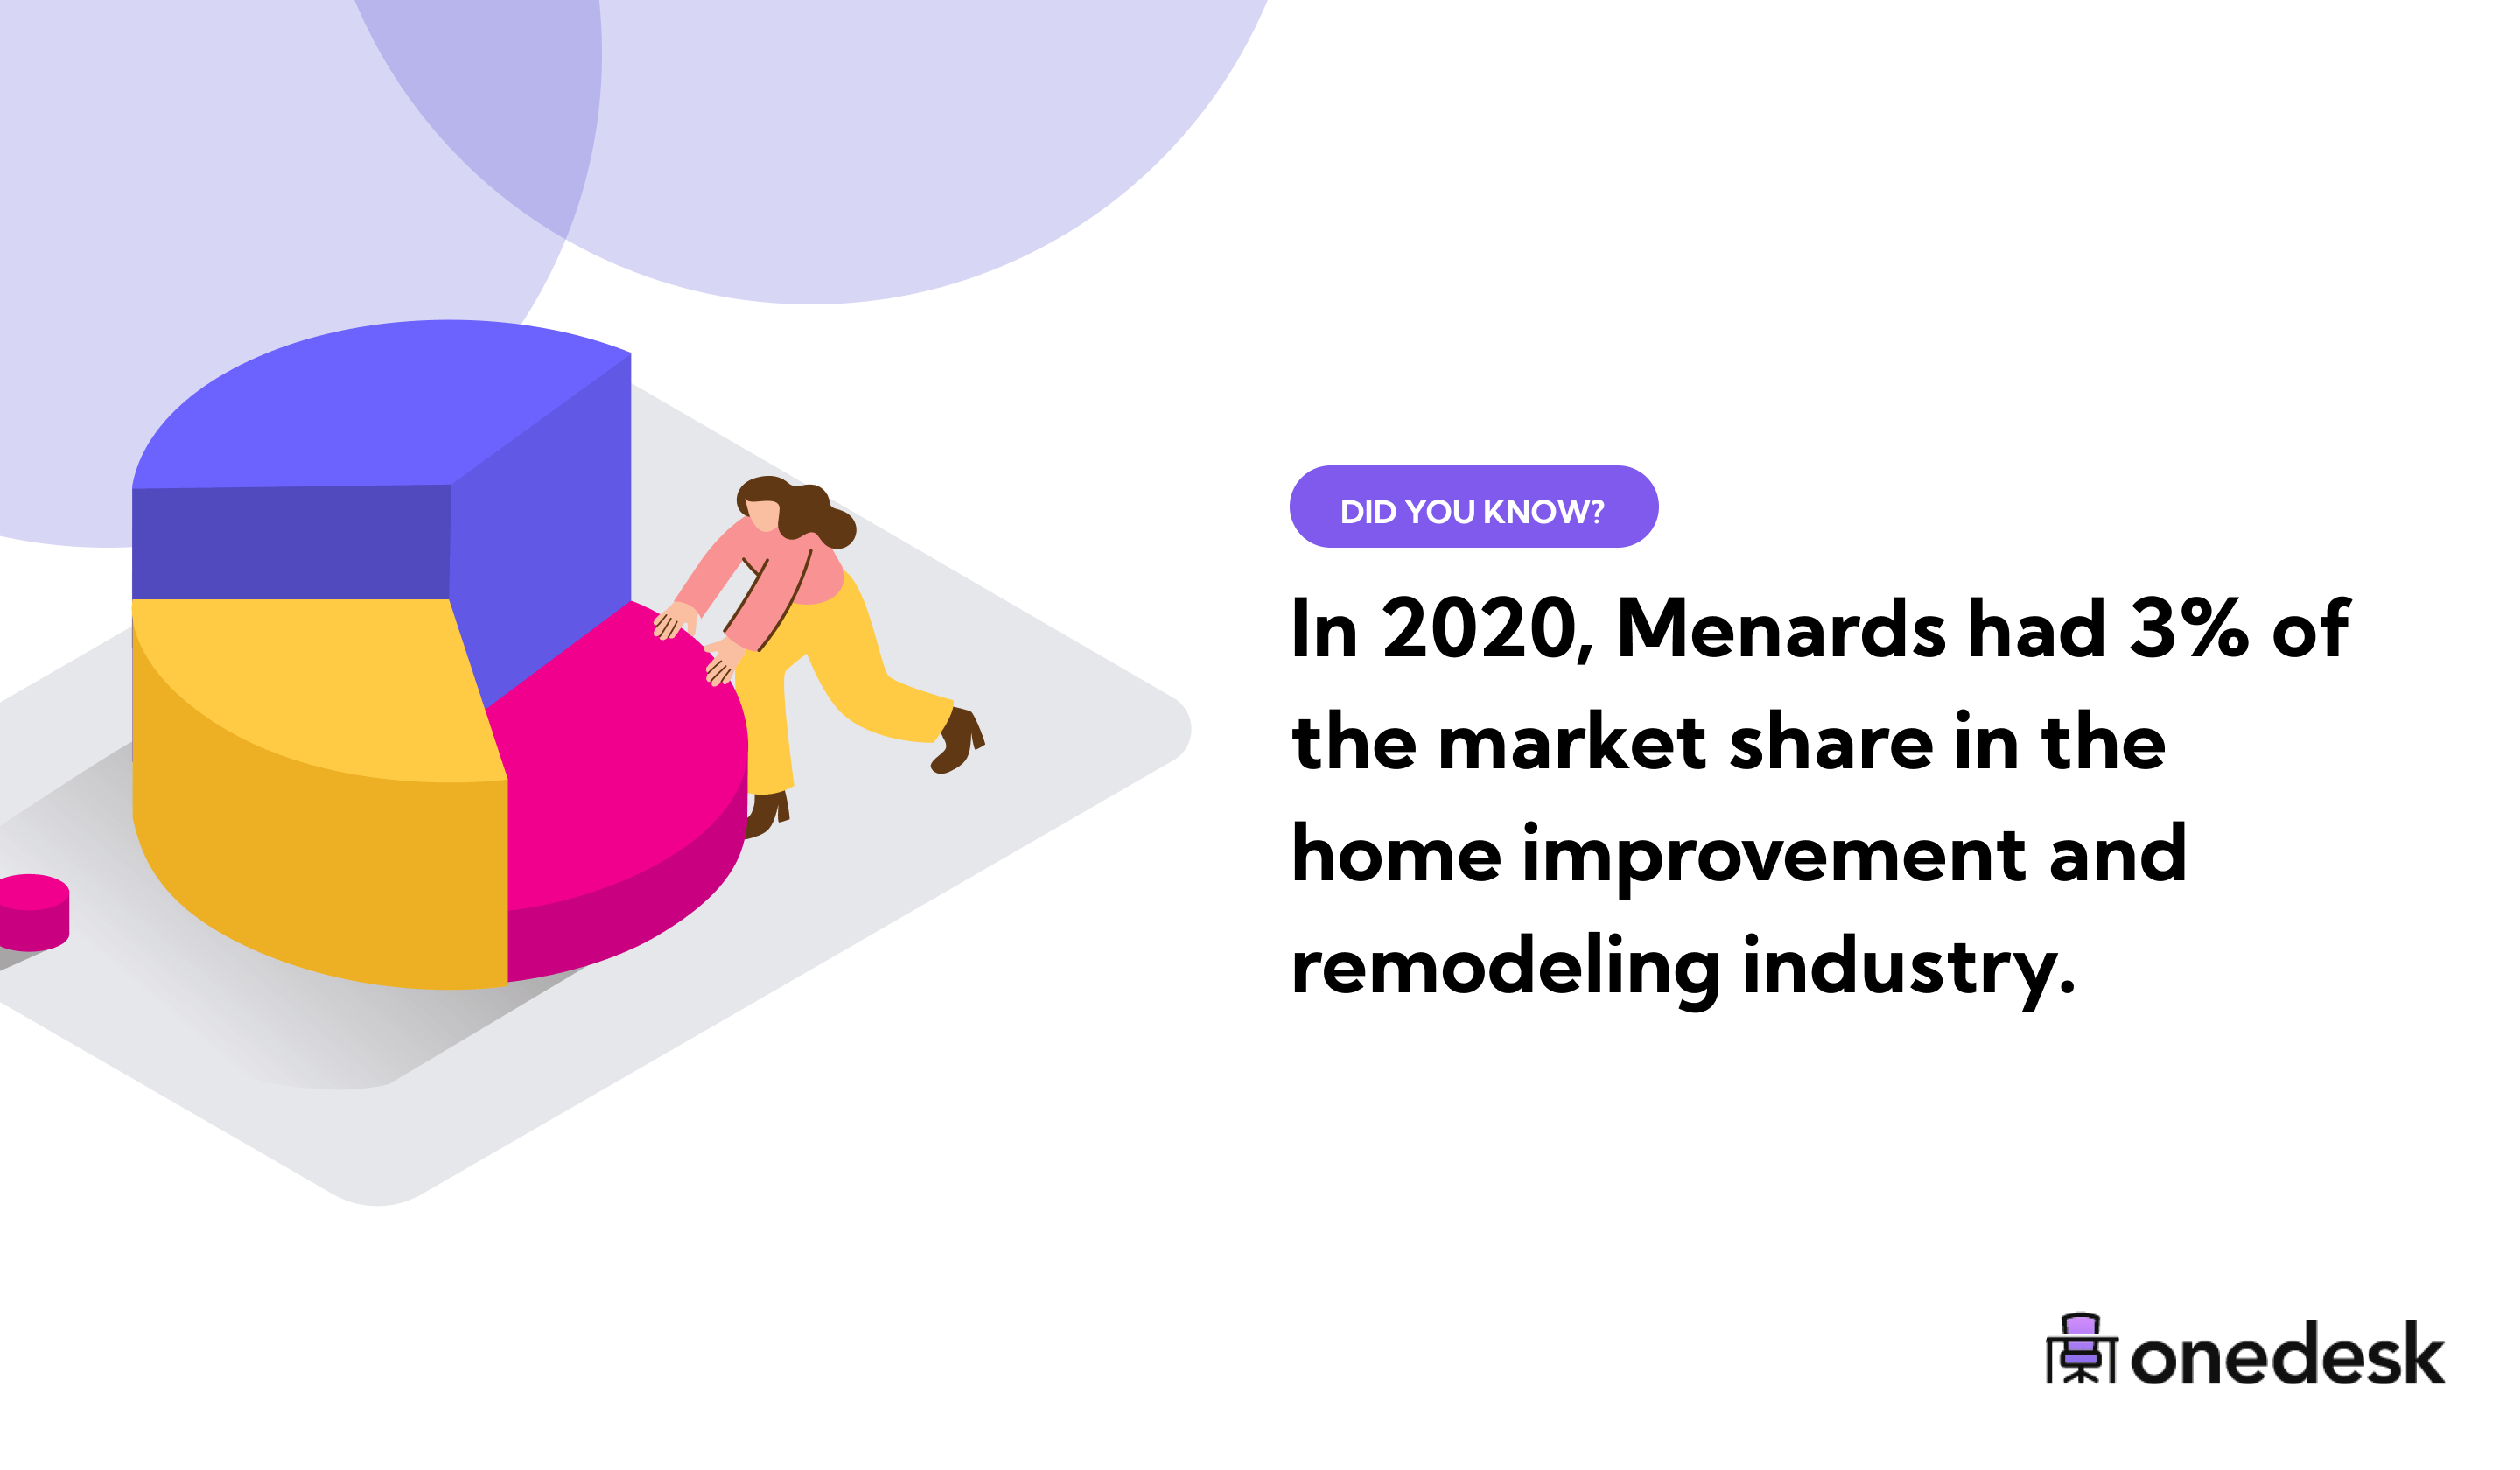 menards market share in the home improvement industry